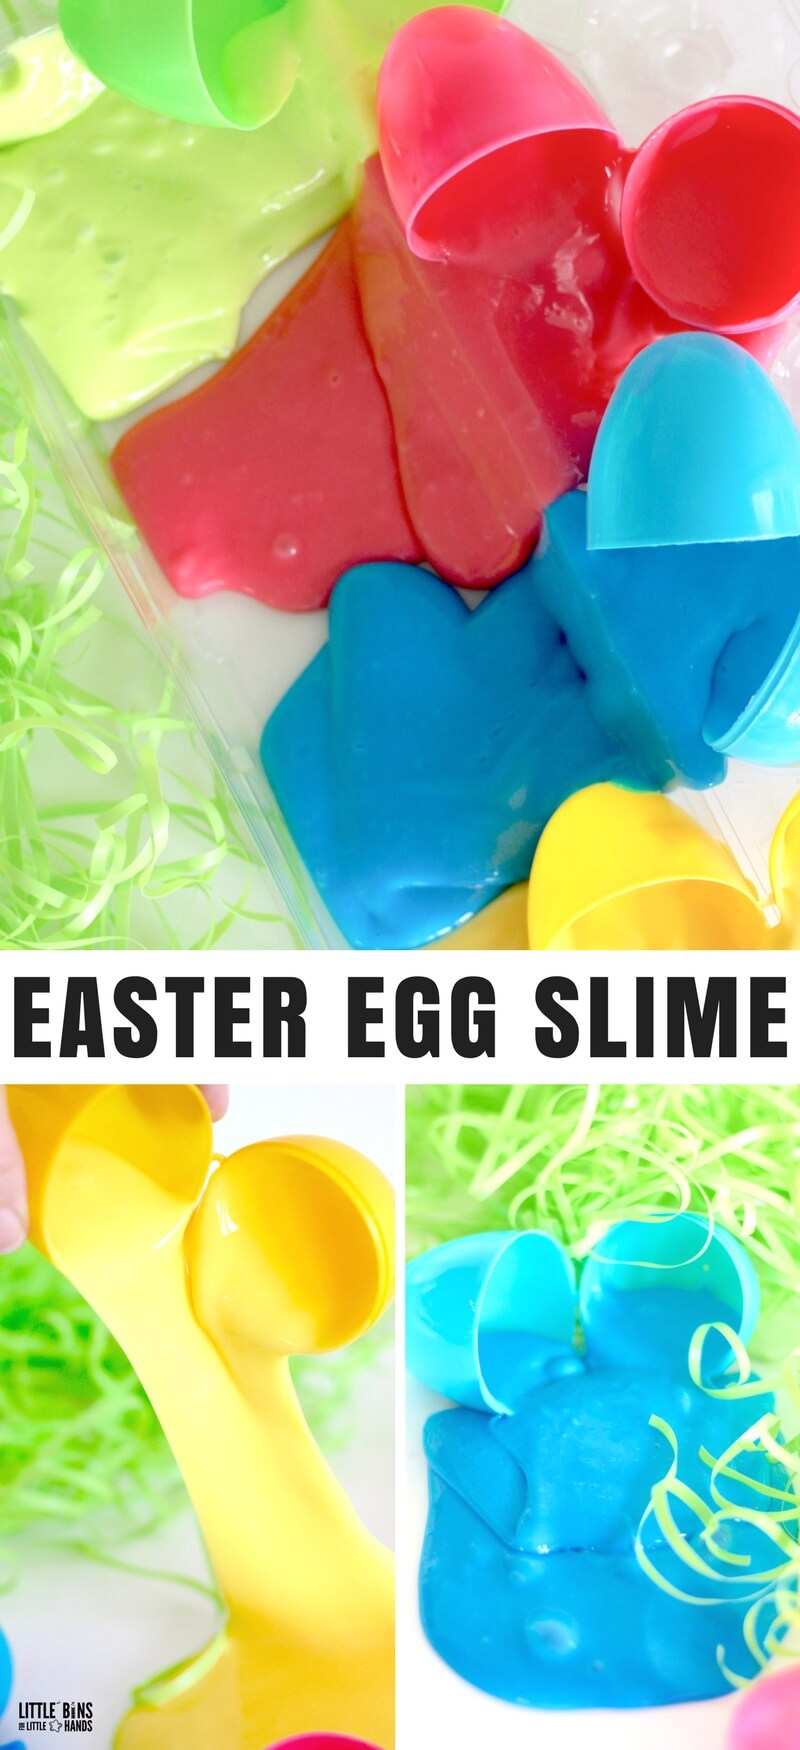 Have you just picked up a fresh bag of brightly colored plastic eggs? Now what,Make Easter egg slime of course! You know you have a hundred of these eggs in a bag somewhere in the house, but somehow the lure of the $1 package of plastic eggs hits you every year! It's totally ok with us! Why not fill them with our amazingly easy homemade slime recipes!